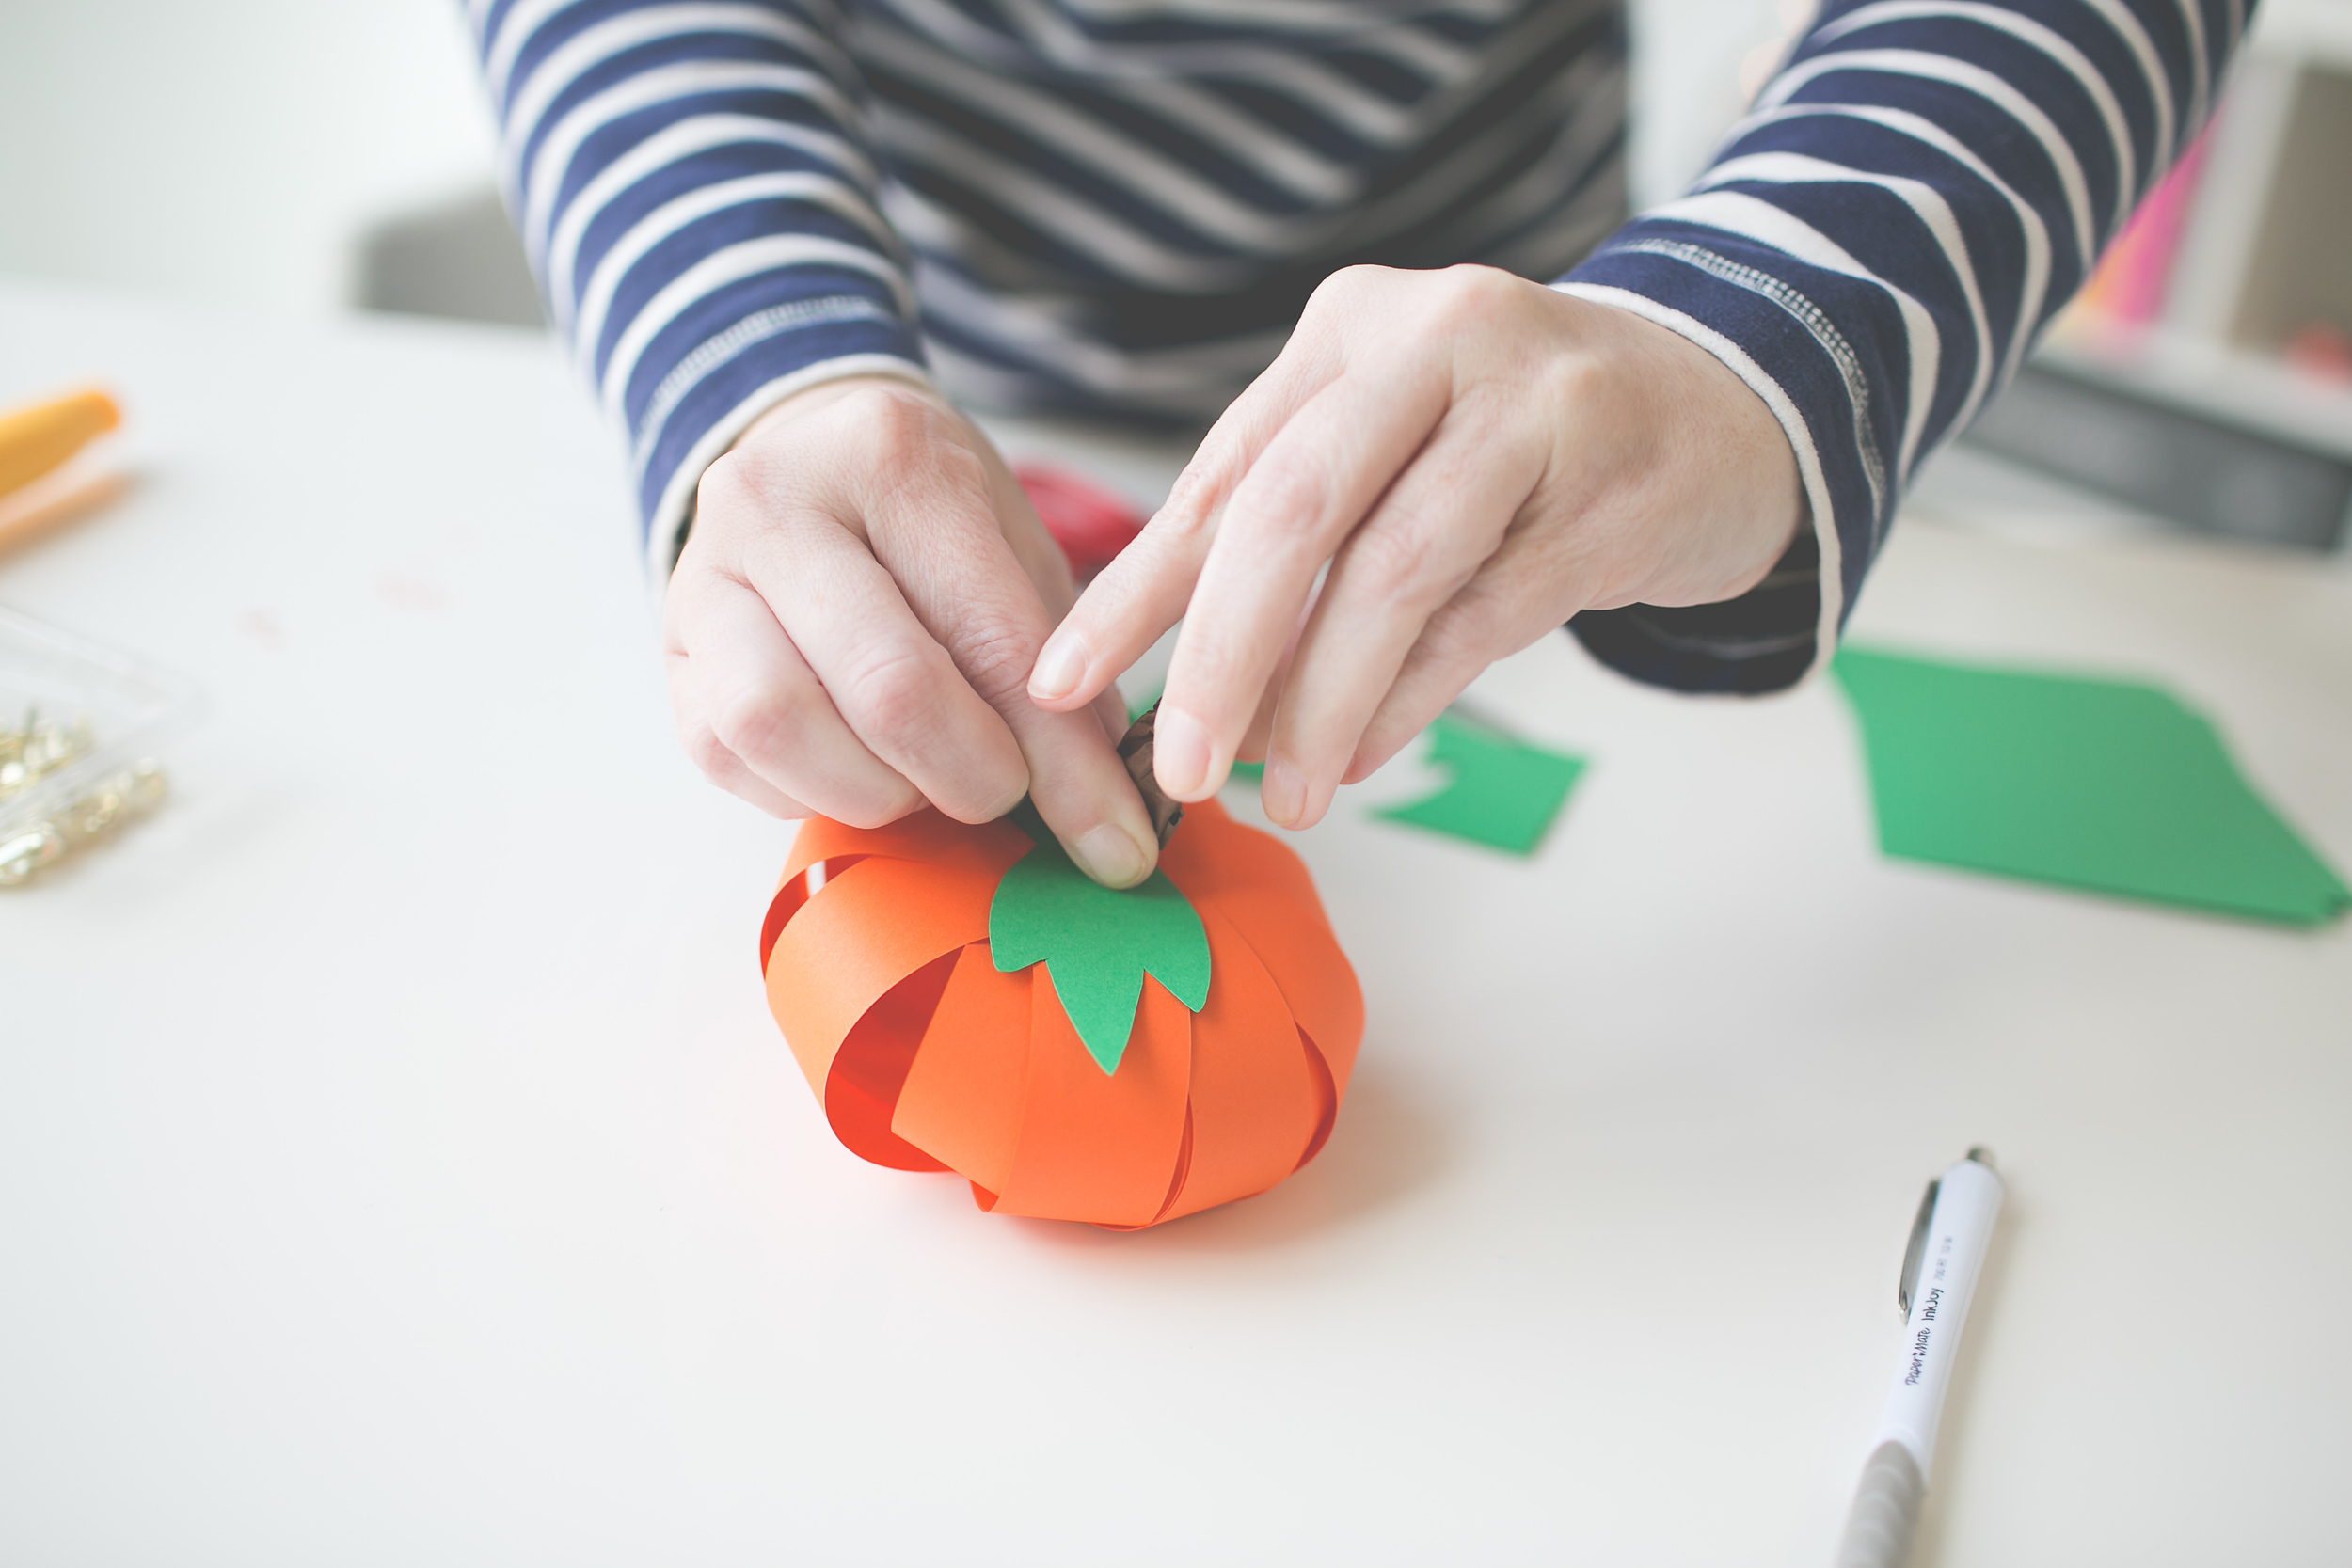 Paper_Pumpkin_DIY_Paper_Craft_Easy_Simple_Cheap_kid_adult_decor_halloween_thanksgiving-108.jpg